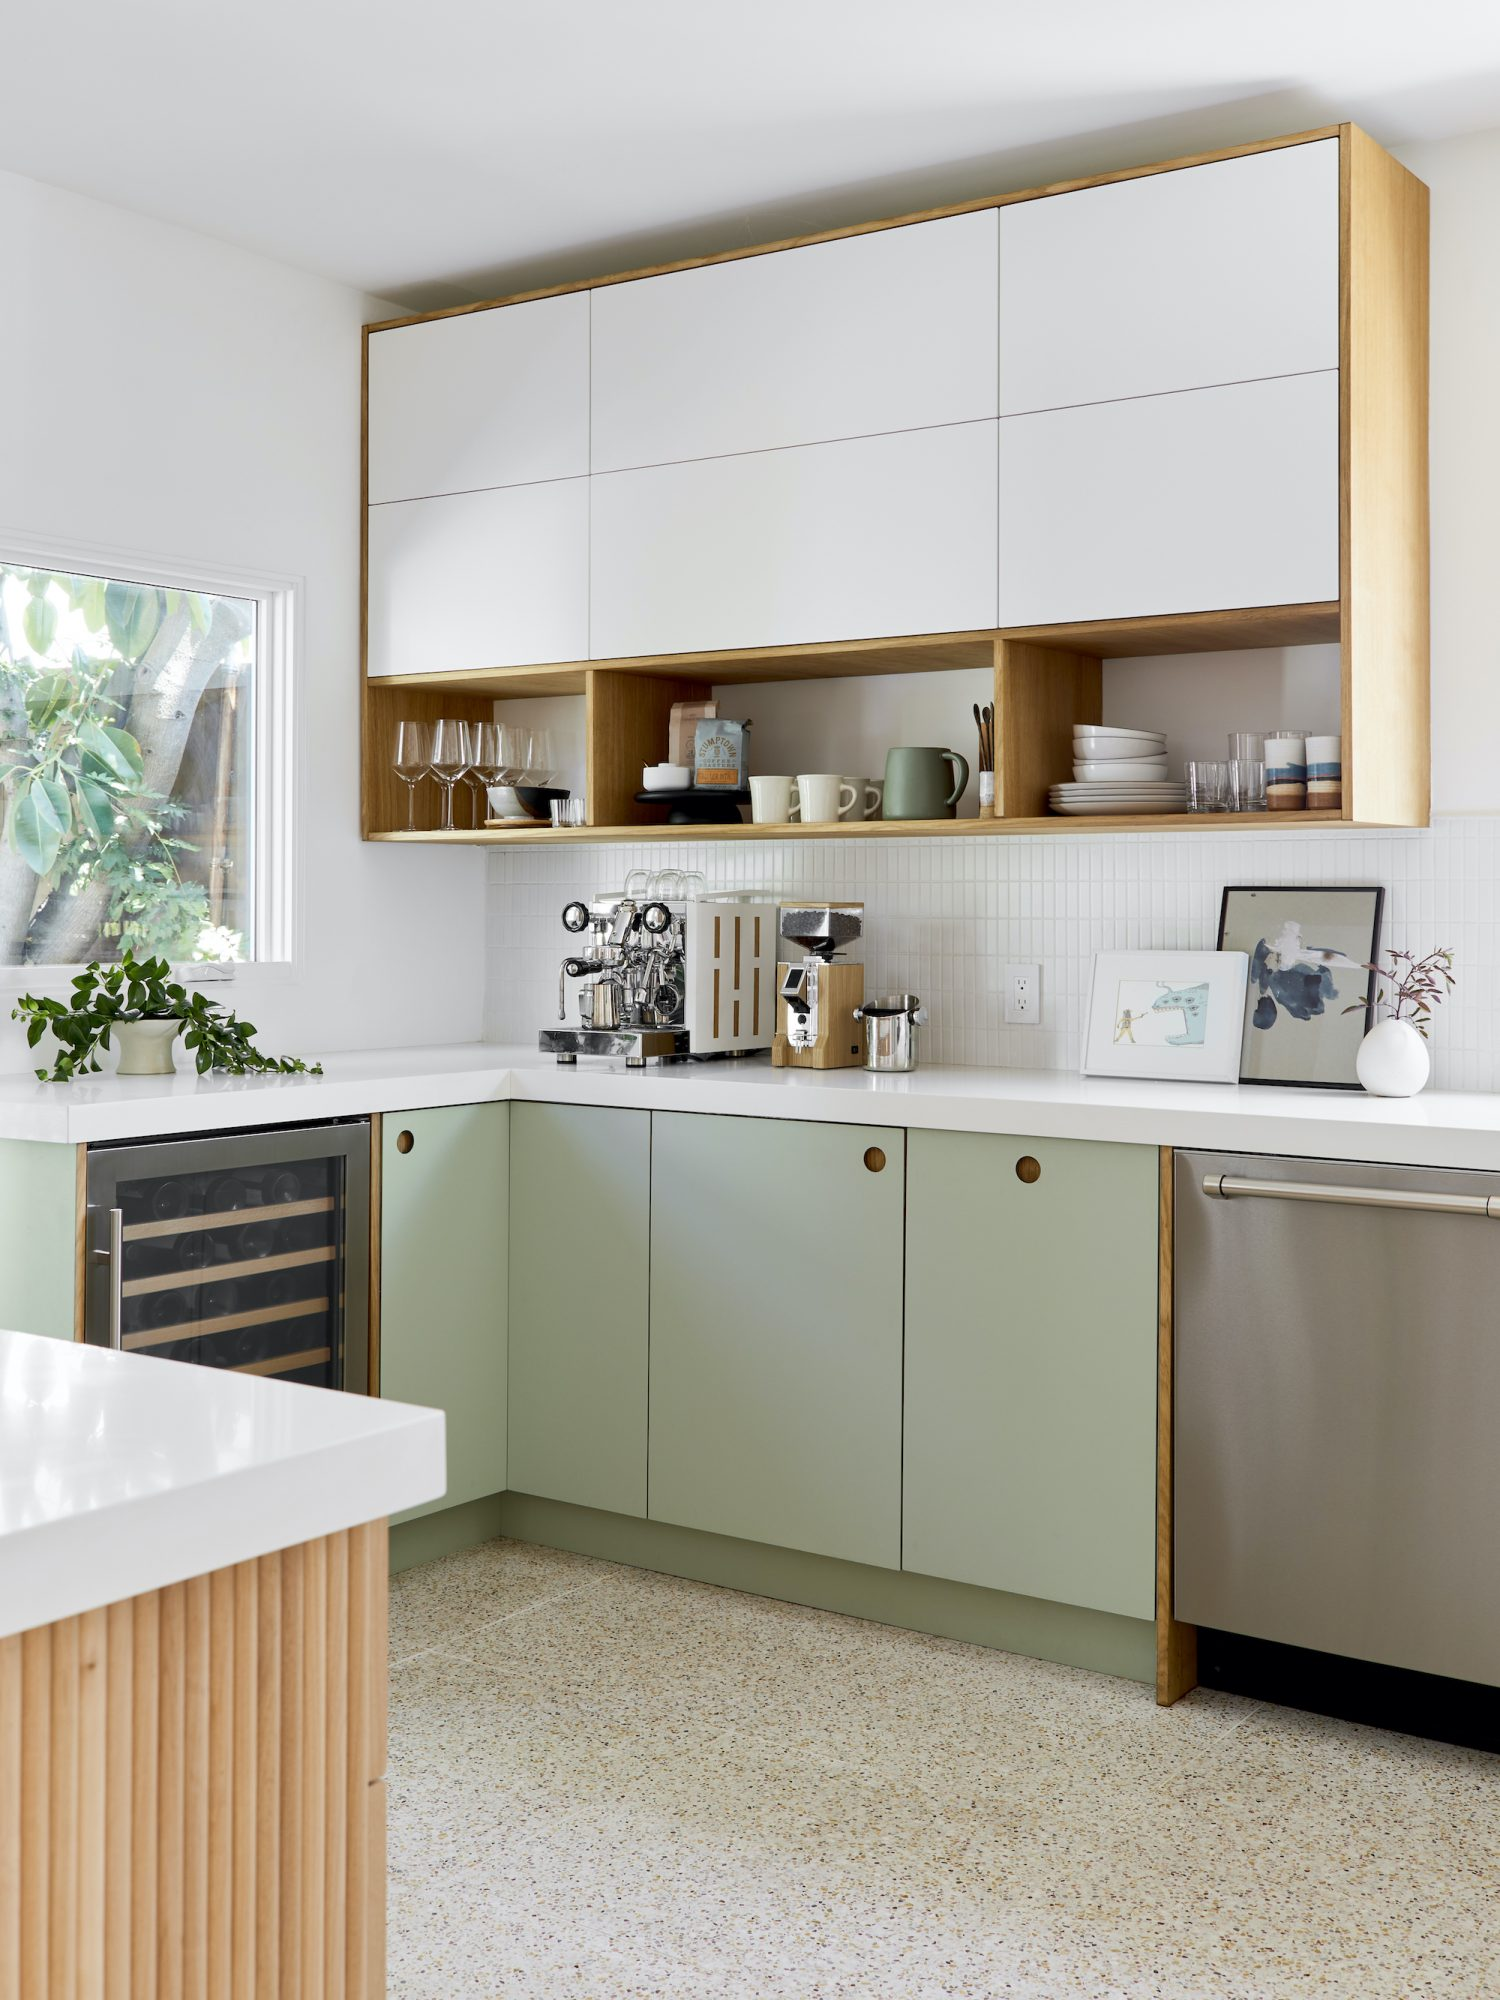 Clean design kitchen with green lower cabinets and white uppers